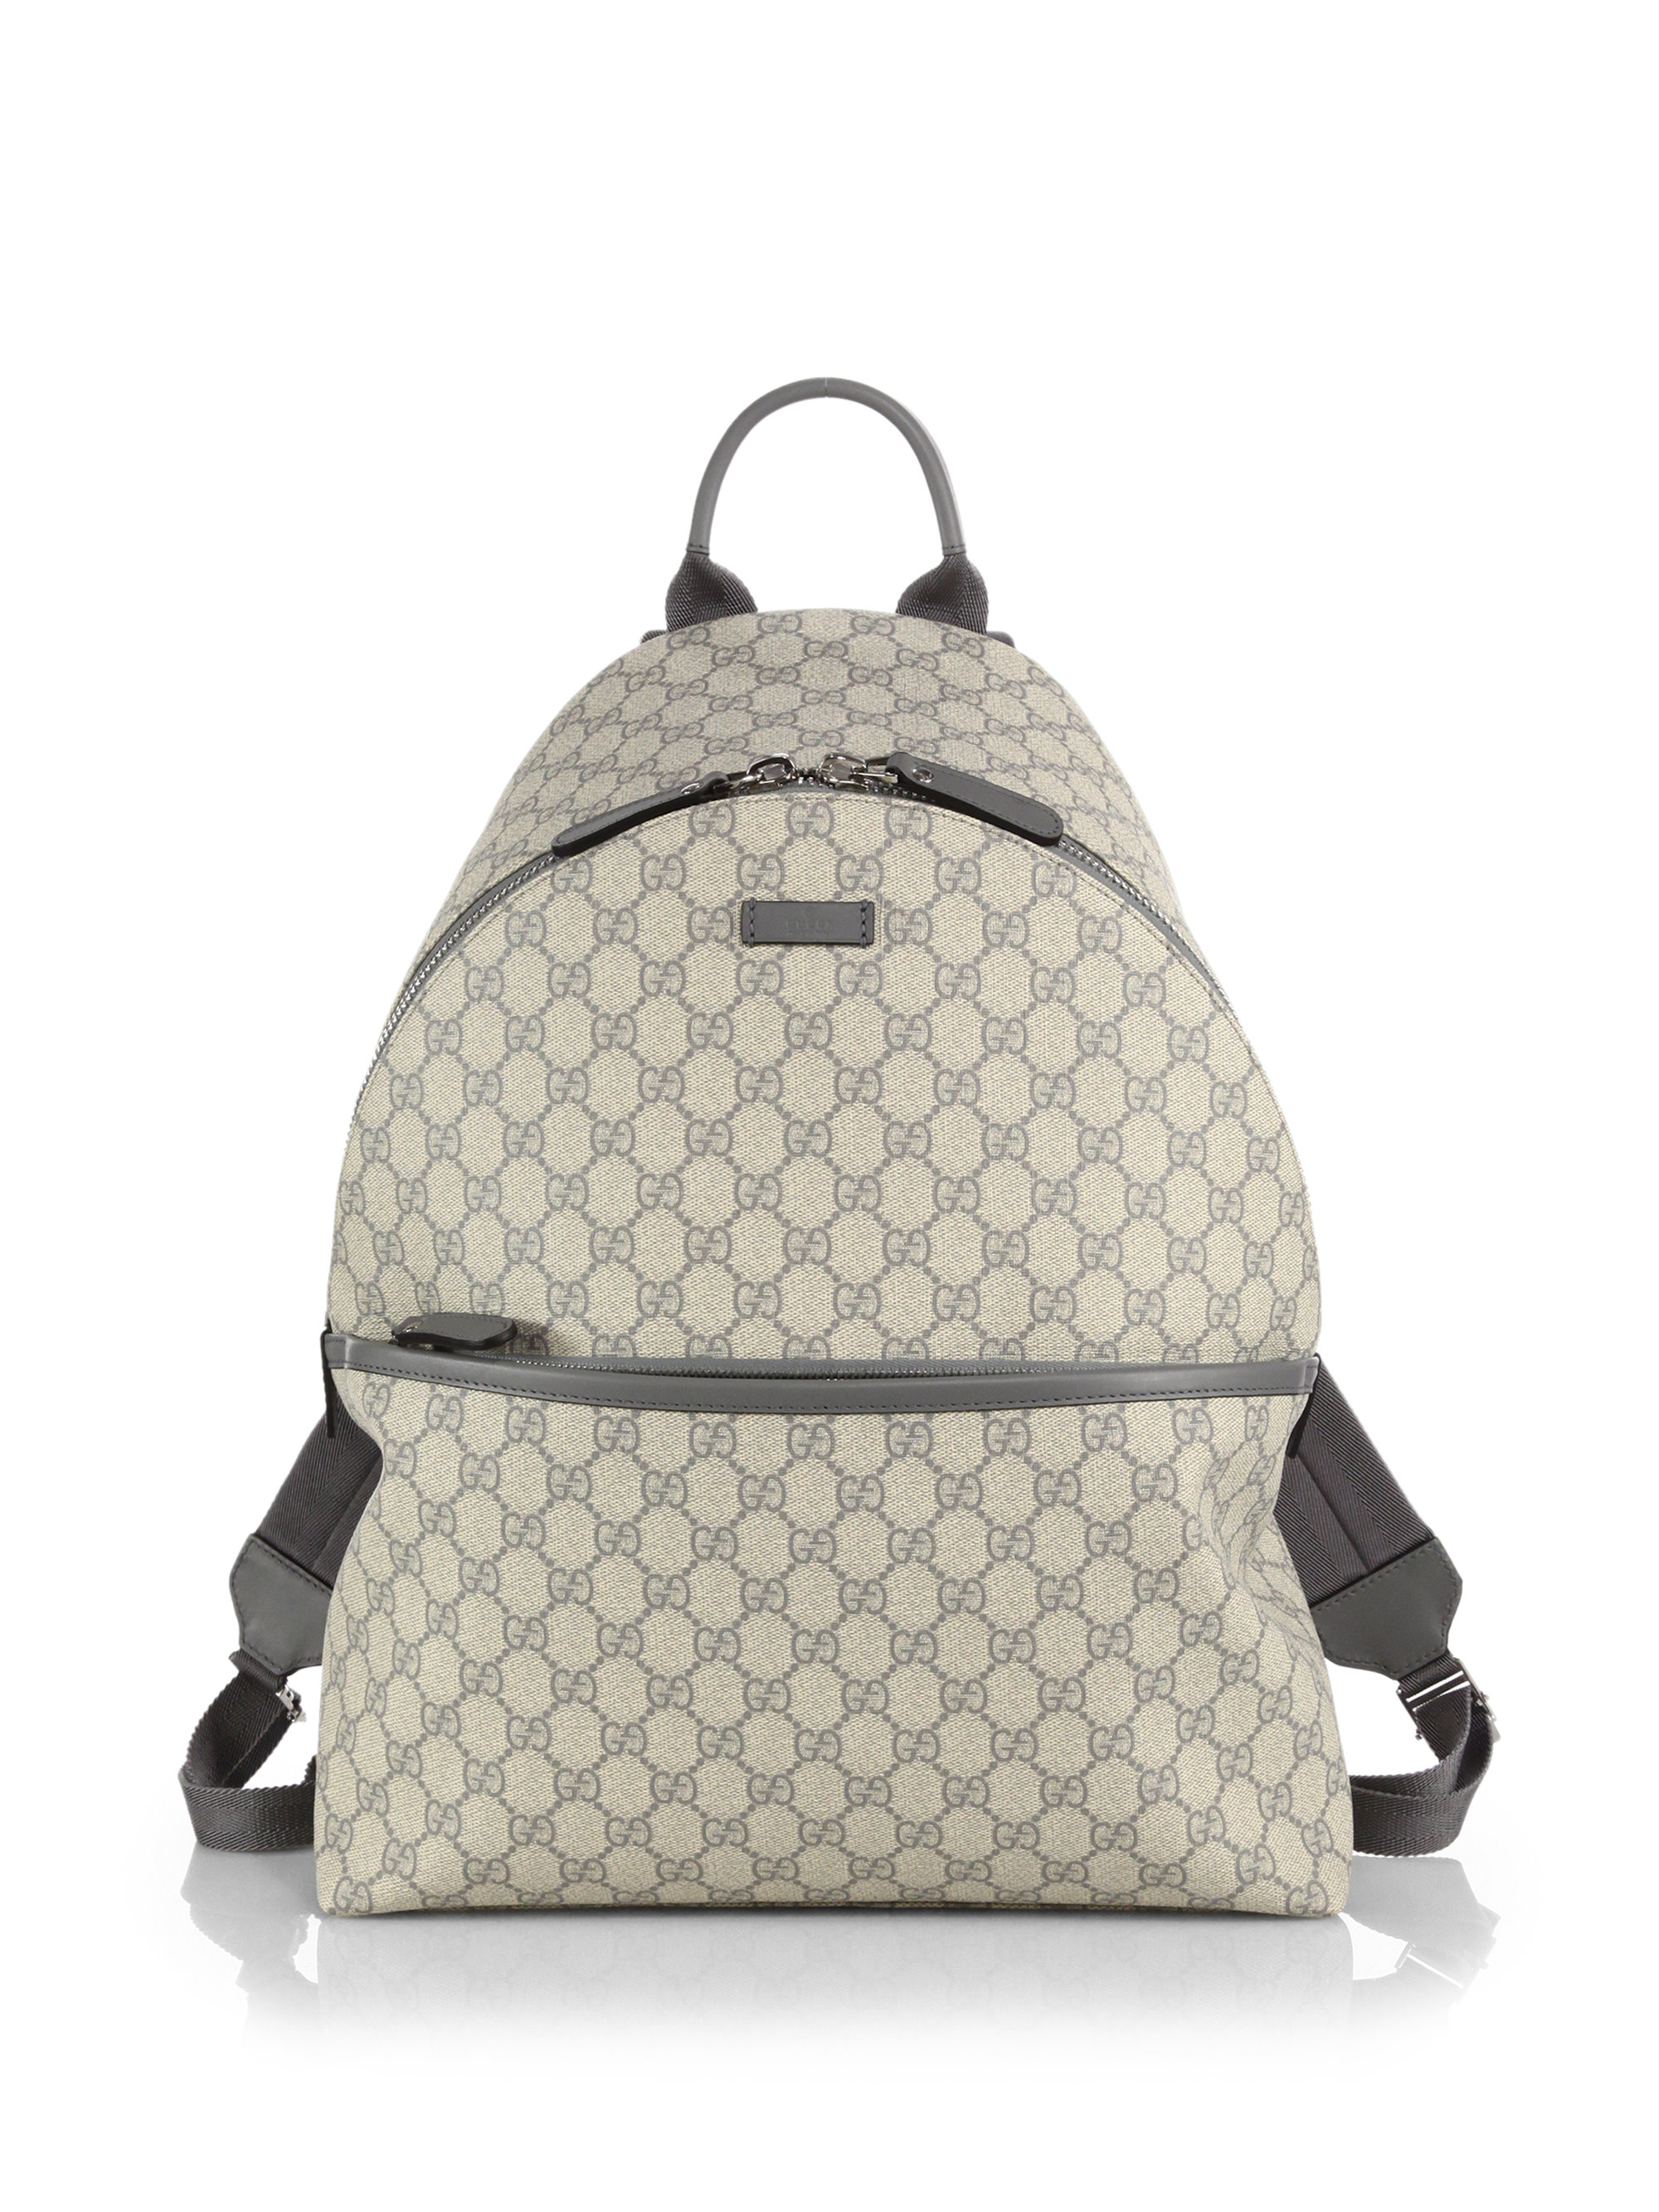 dede051623d Lyst Gucci Gg Supreme Canvas Backpack In Gray For Men. Gallery. Lyst Gucci  Limited Edition ...